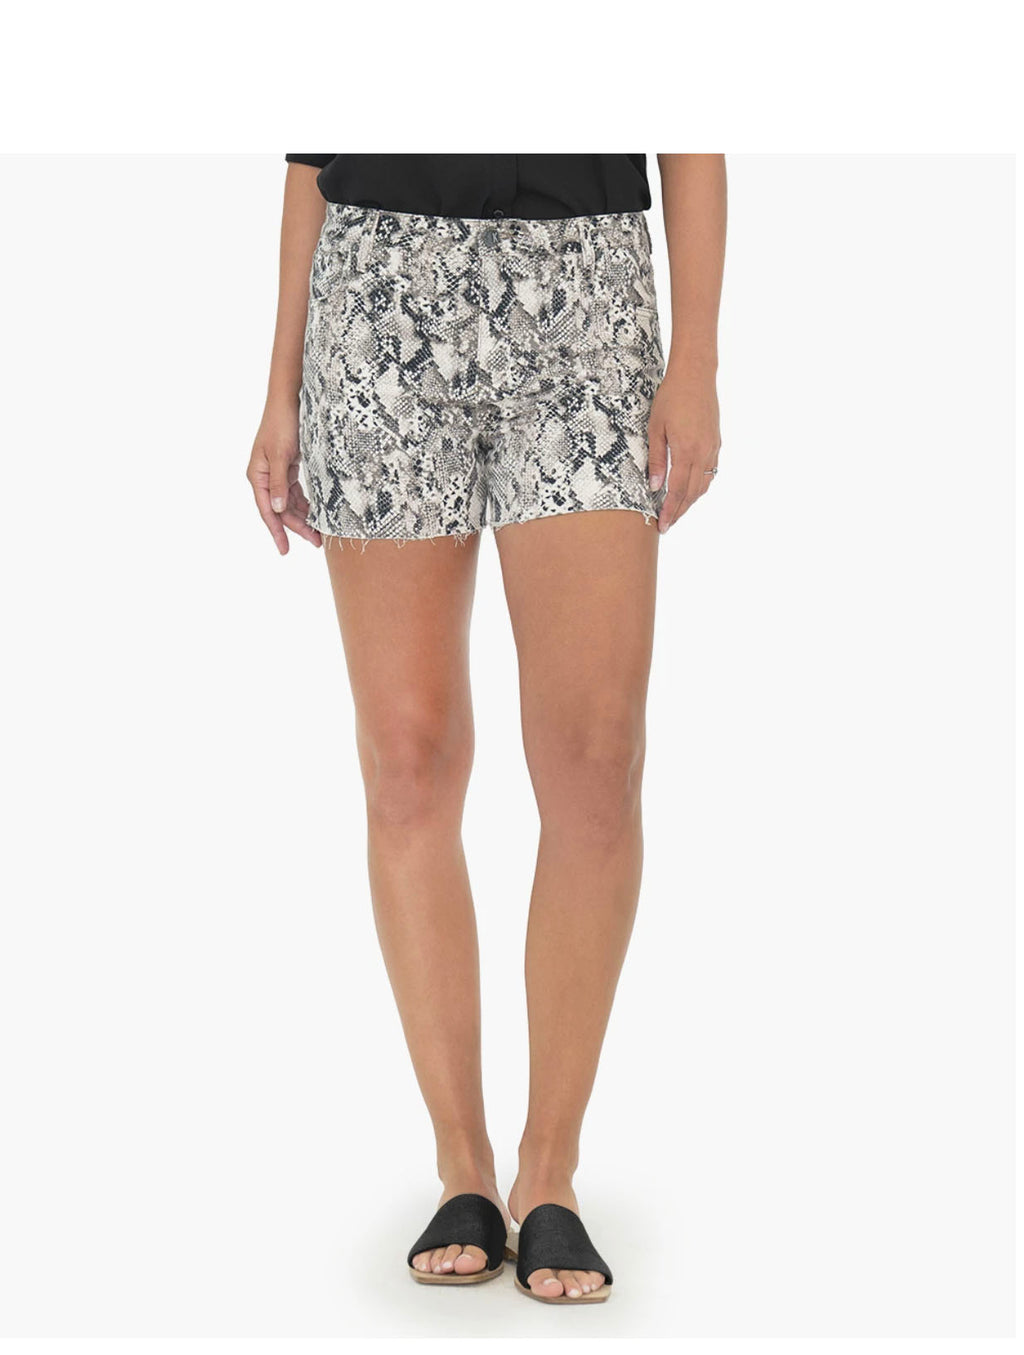 Kut Gidget High Rise Short in Snake